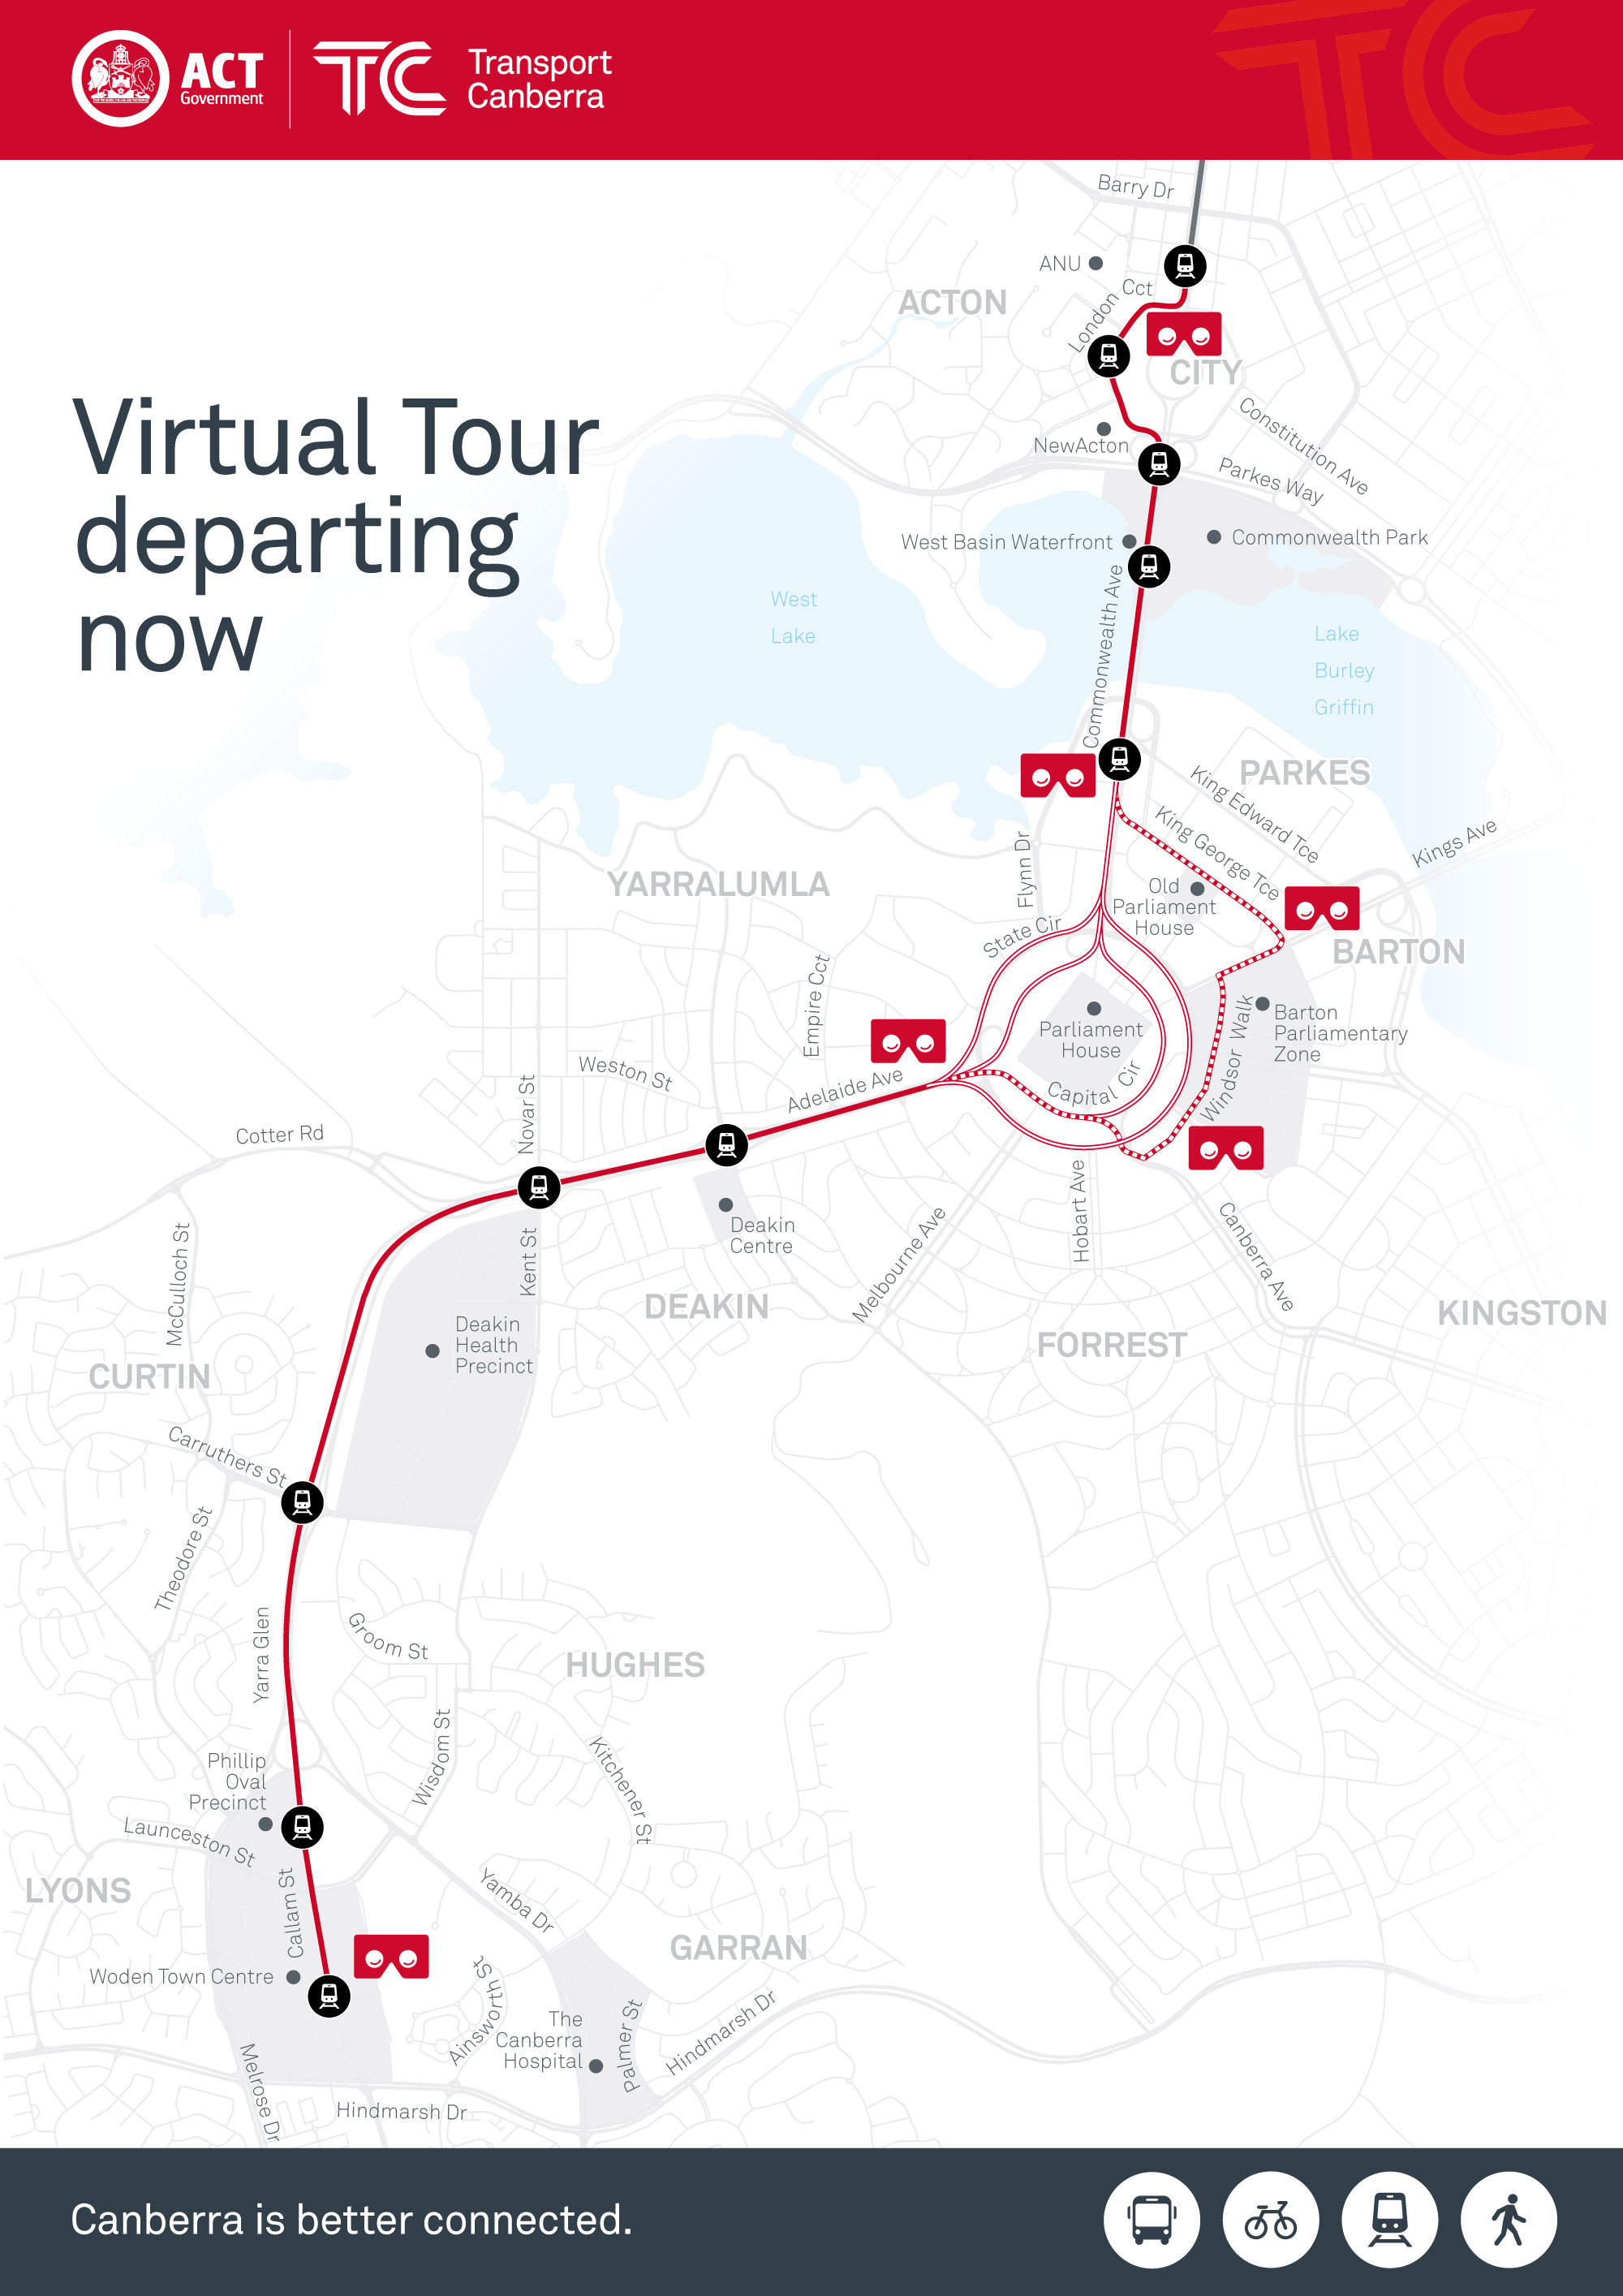 Virtual tour map and locations